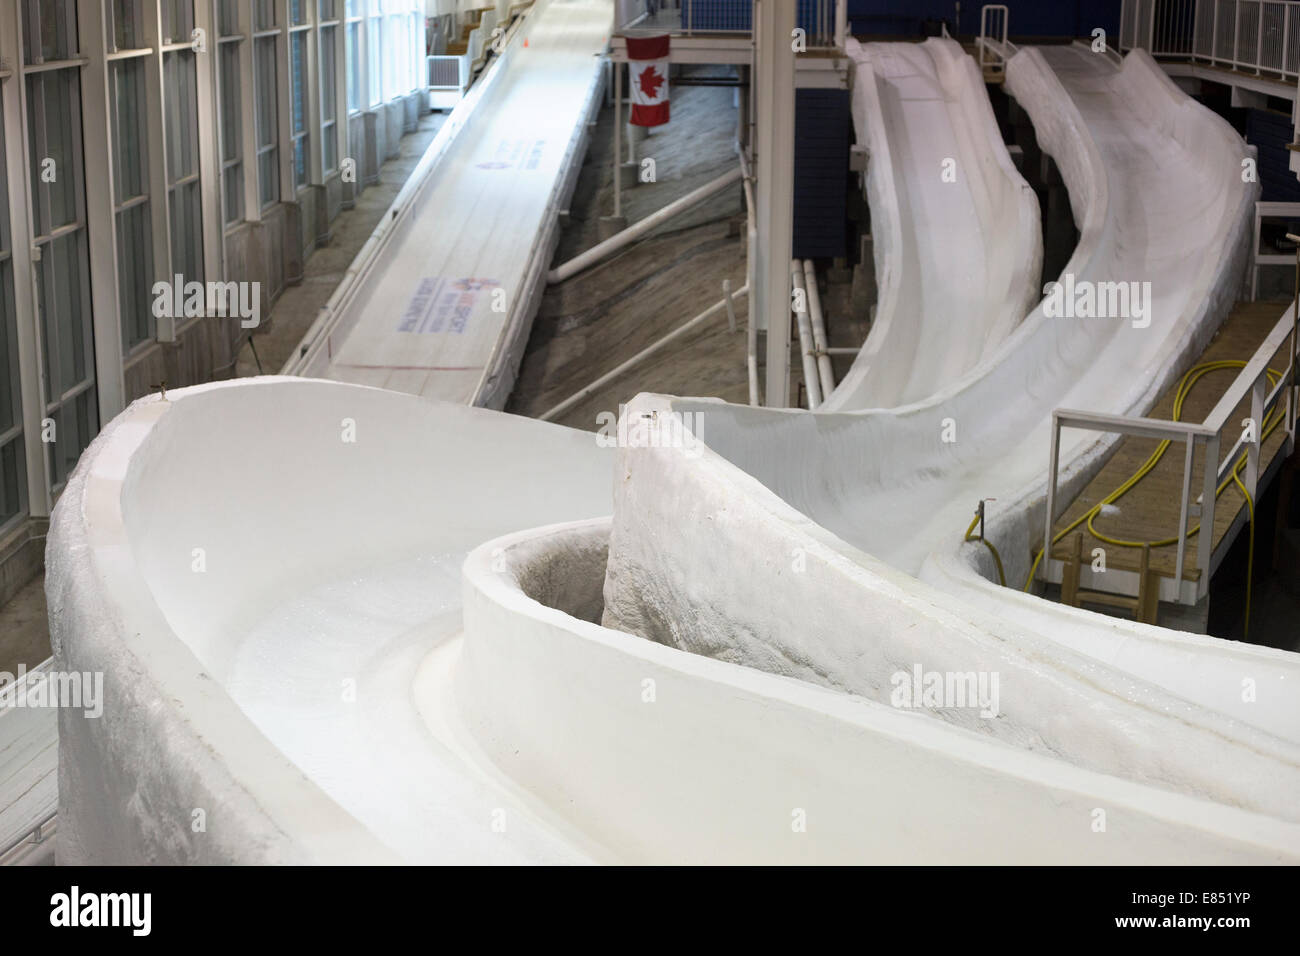 Sliding tracks in the Ice House, a training facility at Canada Olympic Park for sliding sport athletes to practice - Stock Image